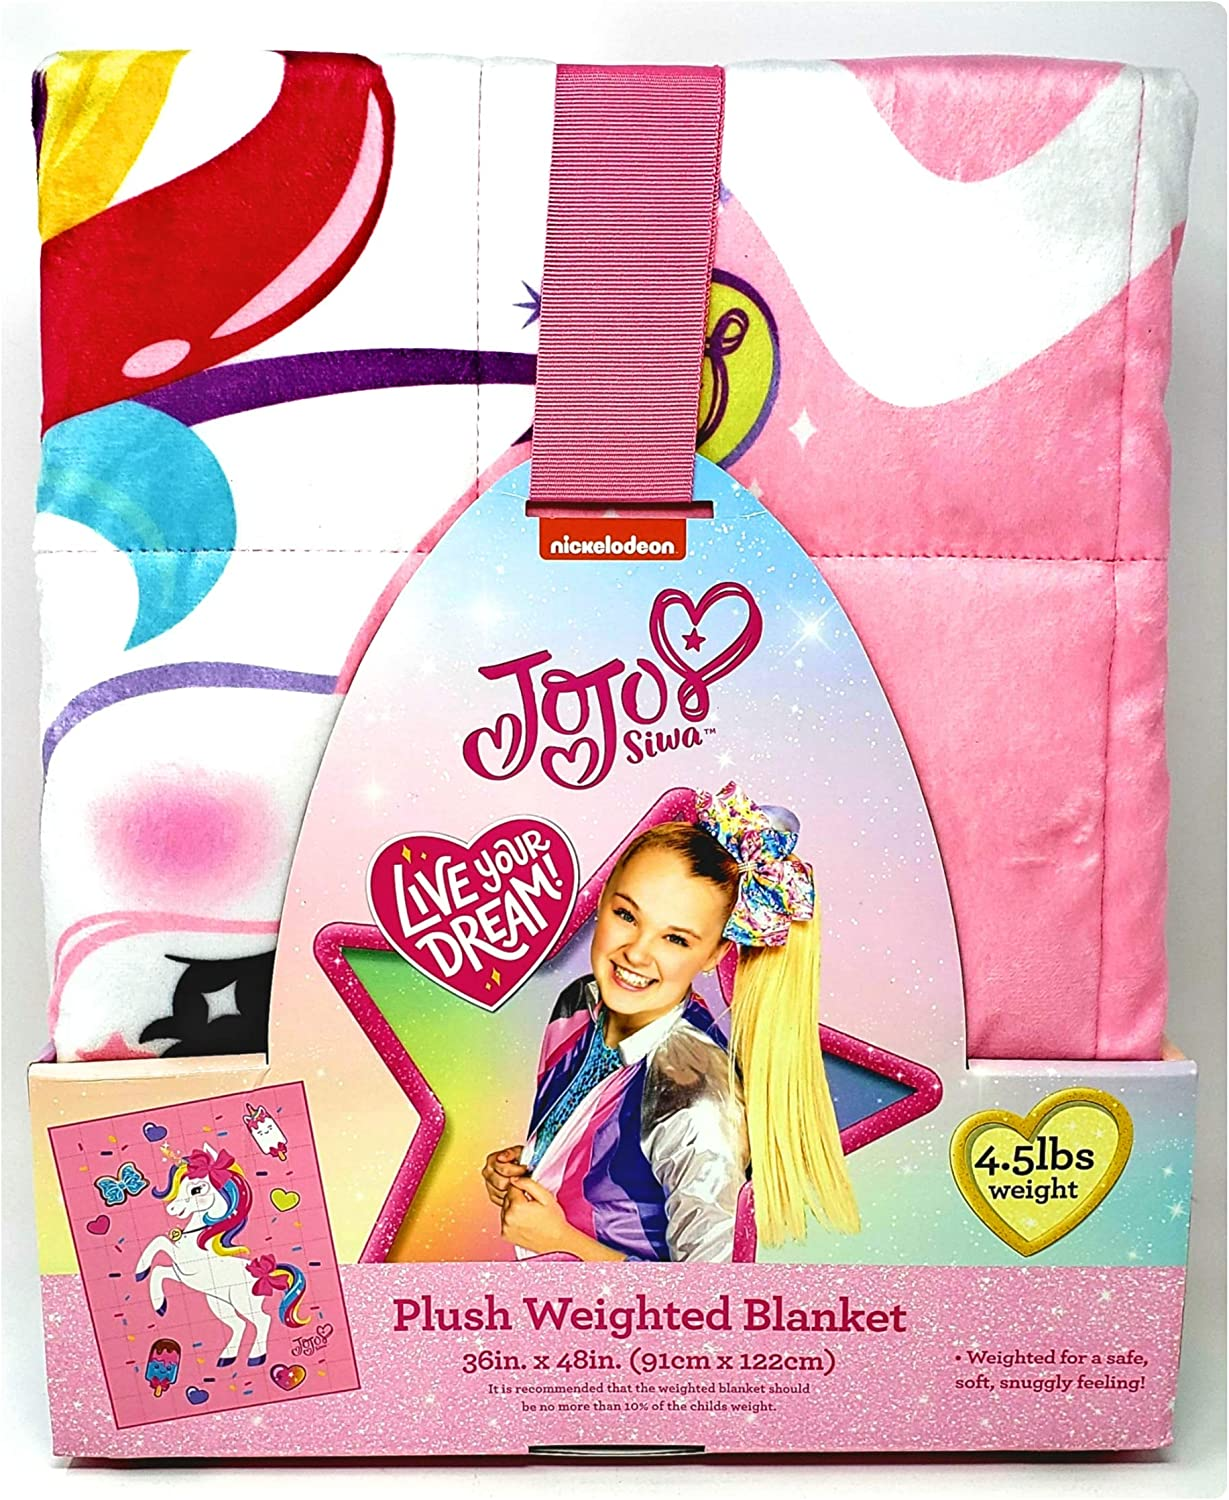 At the price of surprise Franco Manufacturing JoJo Siwa Fixed price for sale Plush lbs Weighted 4.5 Blanket -